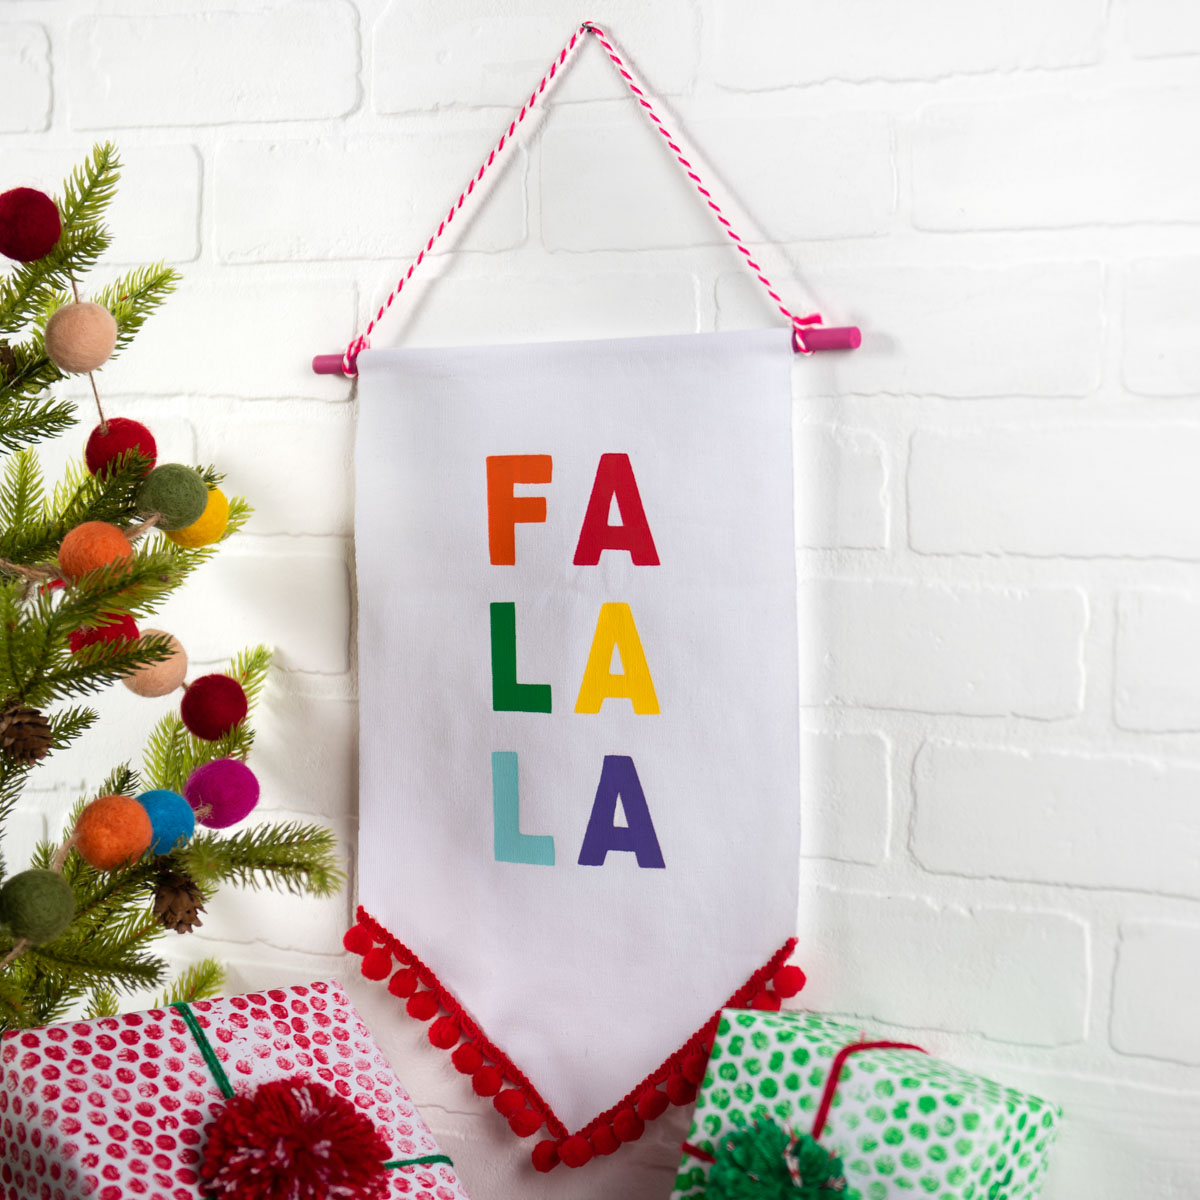 Holiday Home Decor: Fa La La Banner & Snowflake Paint Skins